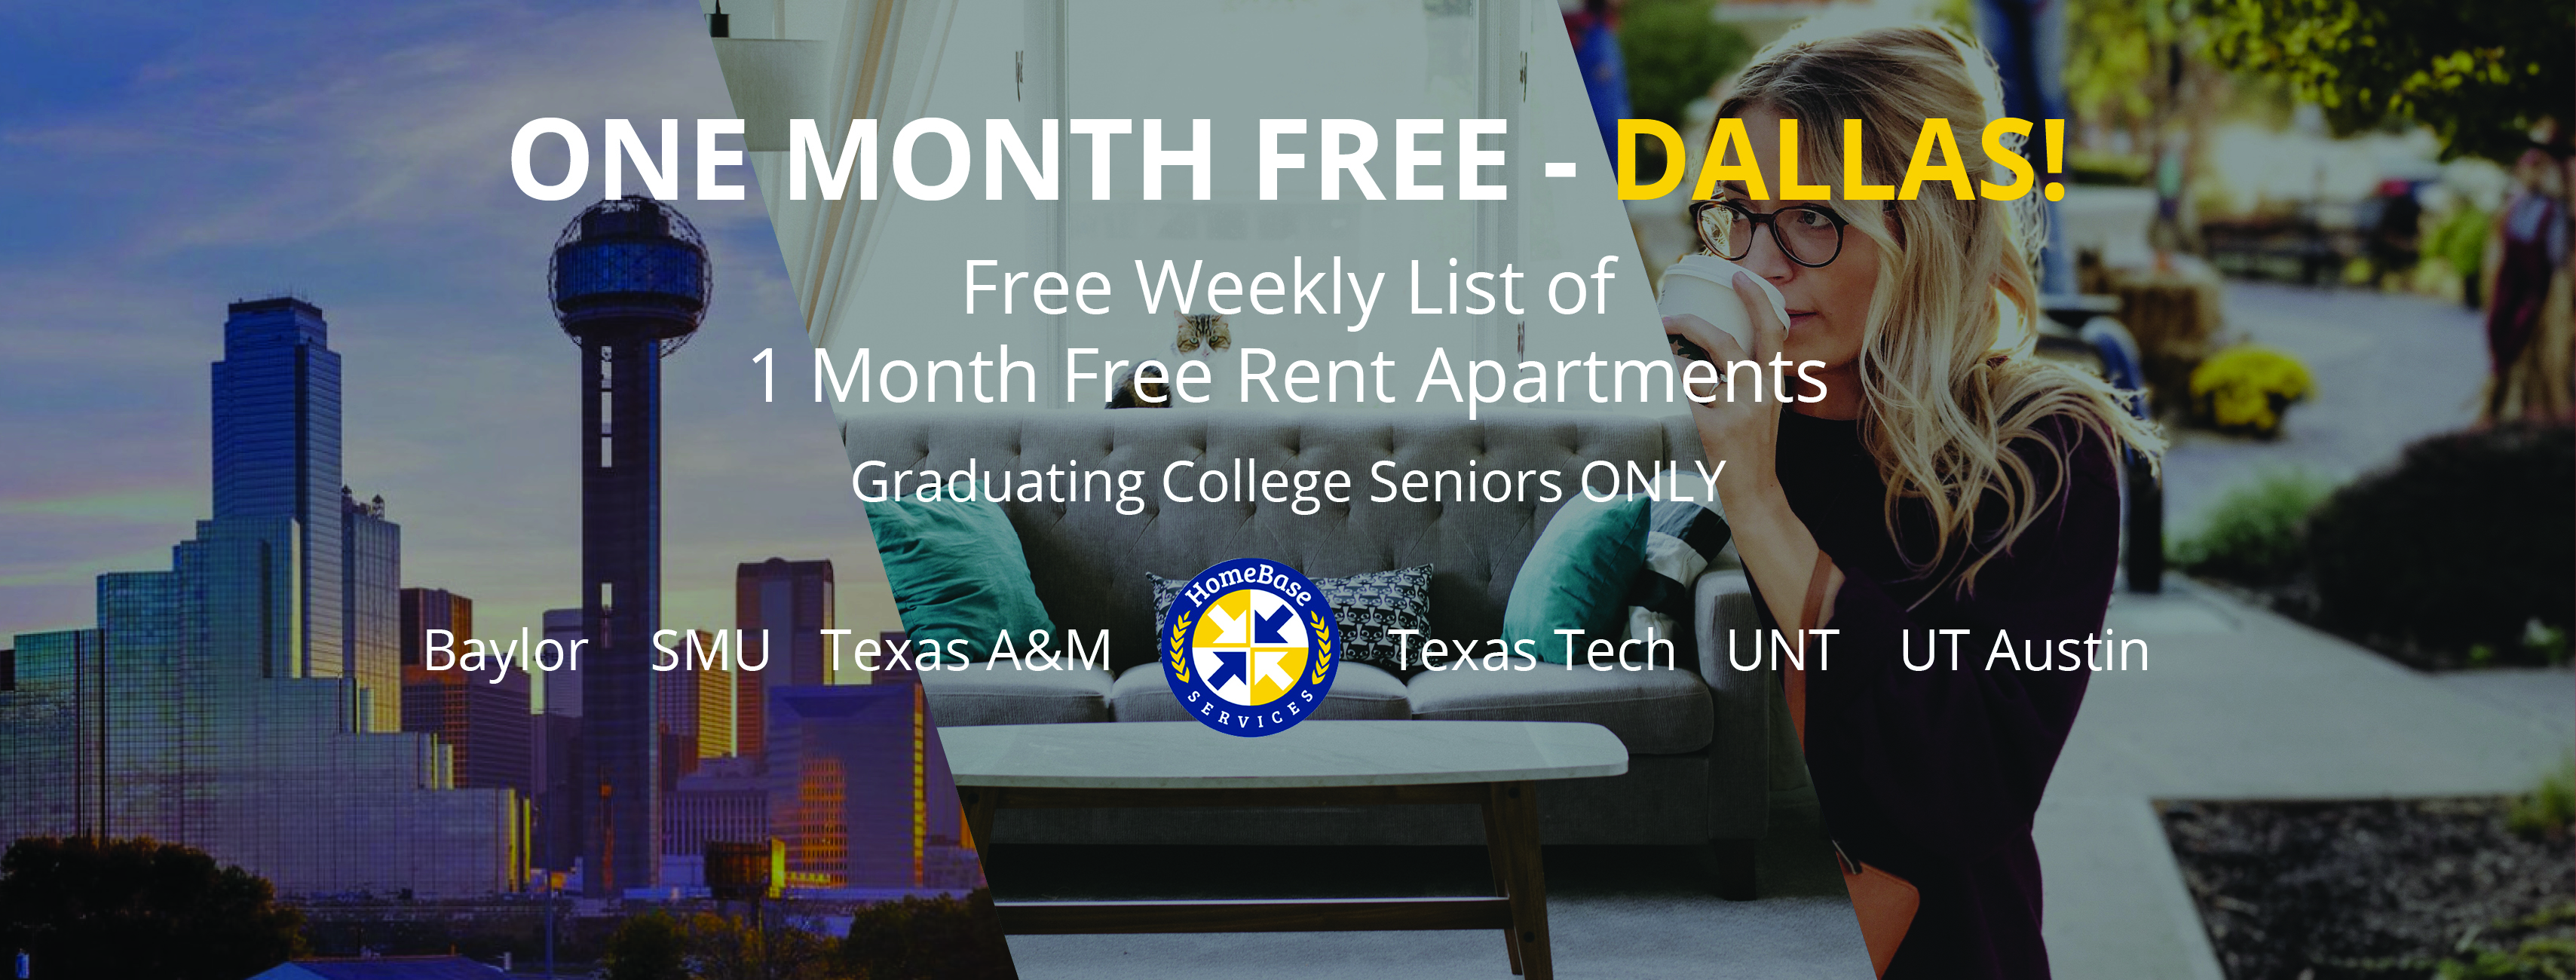 Dallas Apartments Offering 1 month Free Weekly Specials – As of March 22, 2018